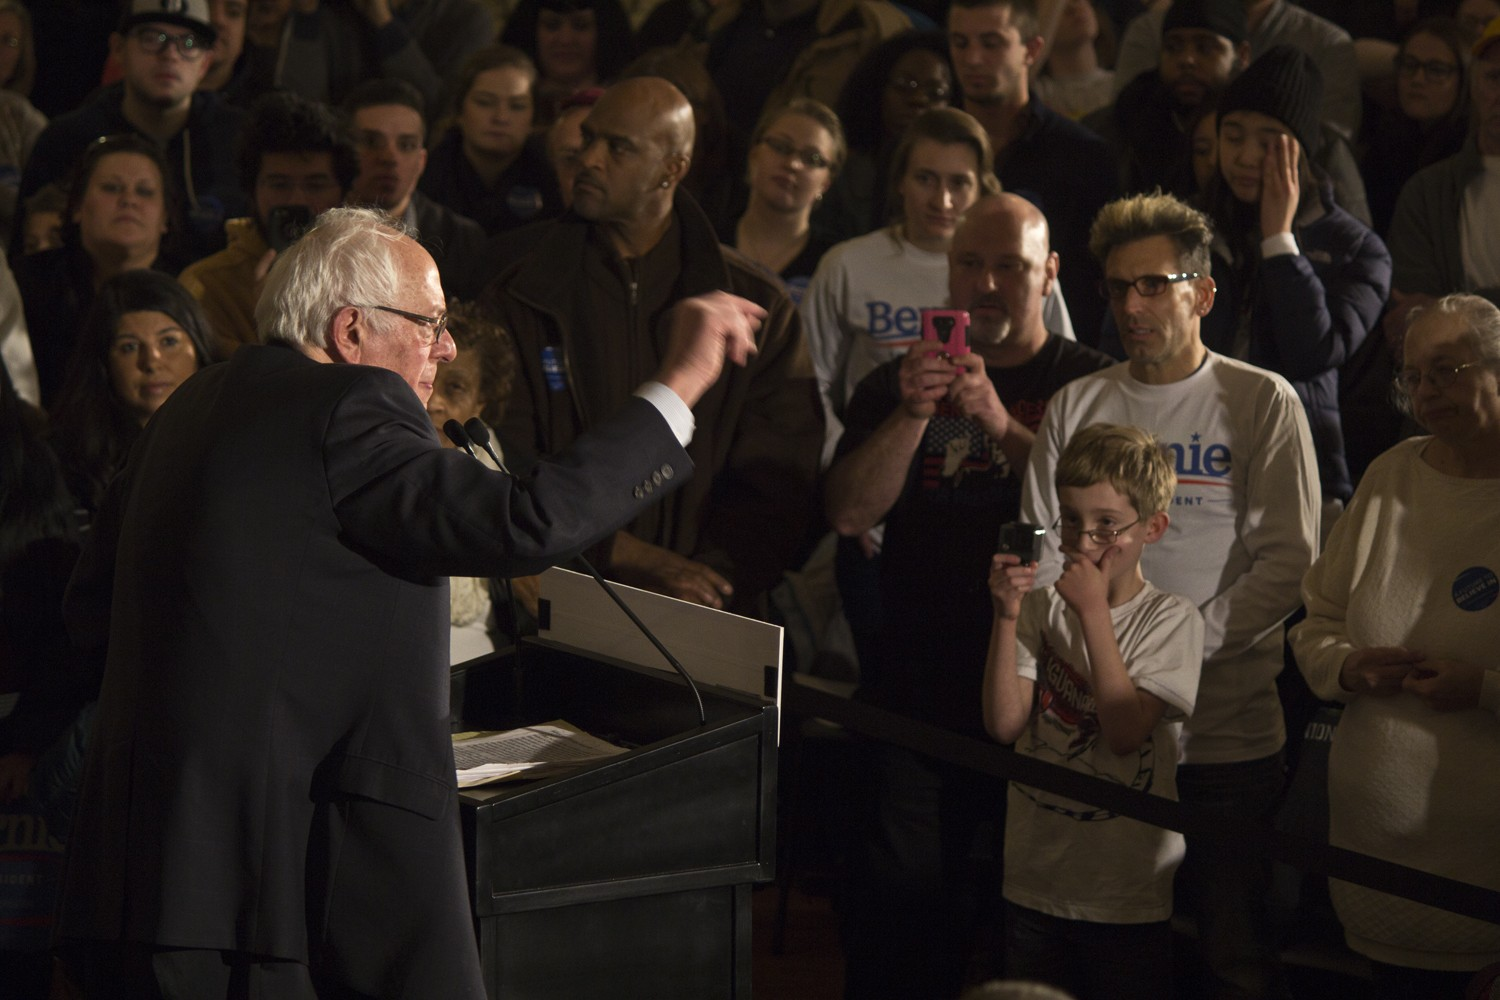 Bernie Sanders Supporters Called Out Media Whitewashing With #BernieMadeMeWhite